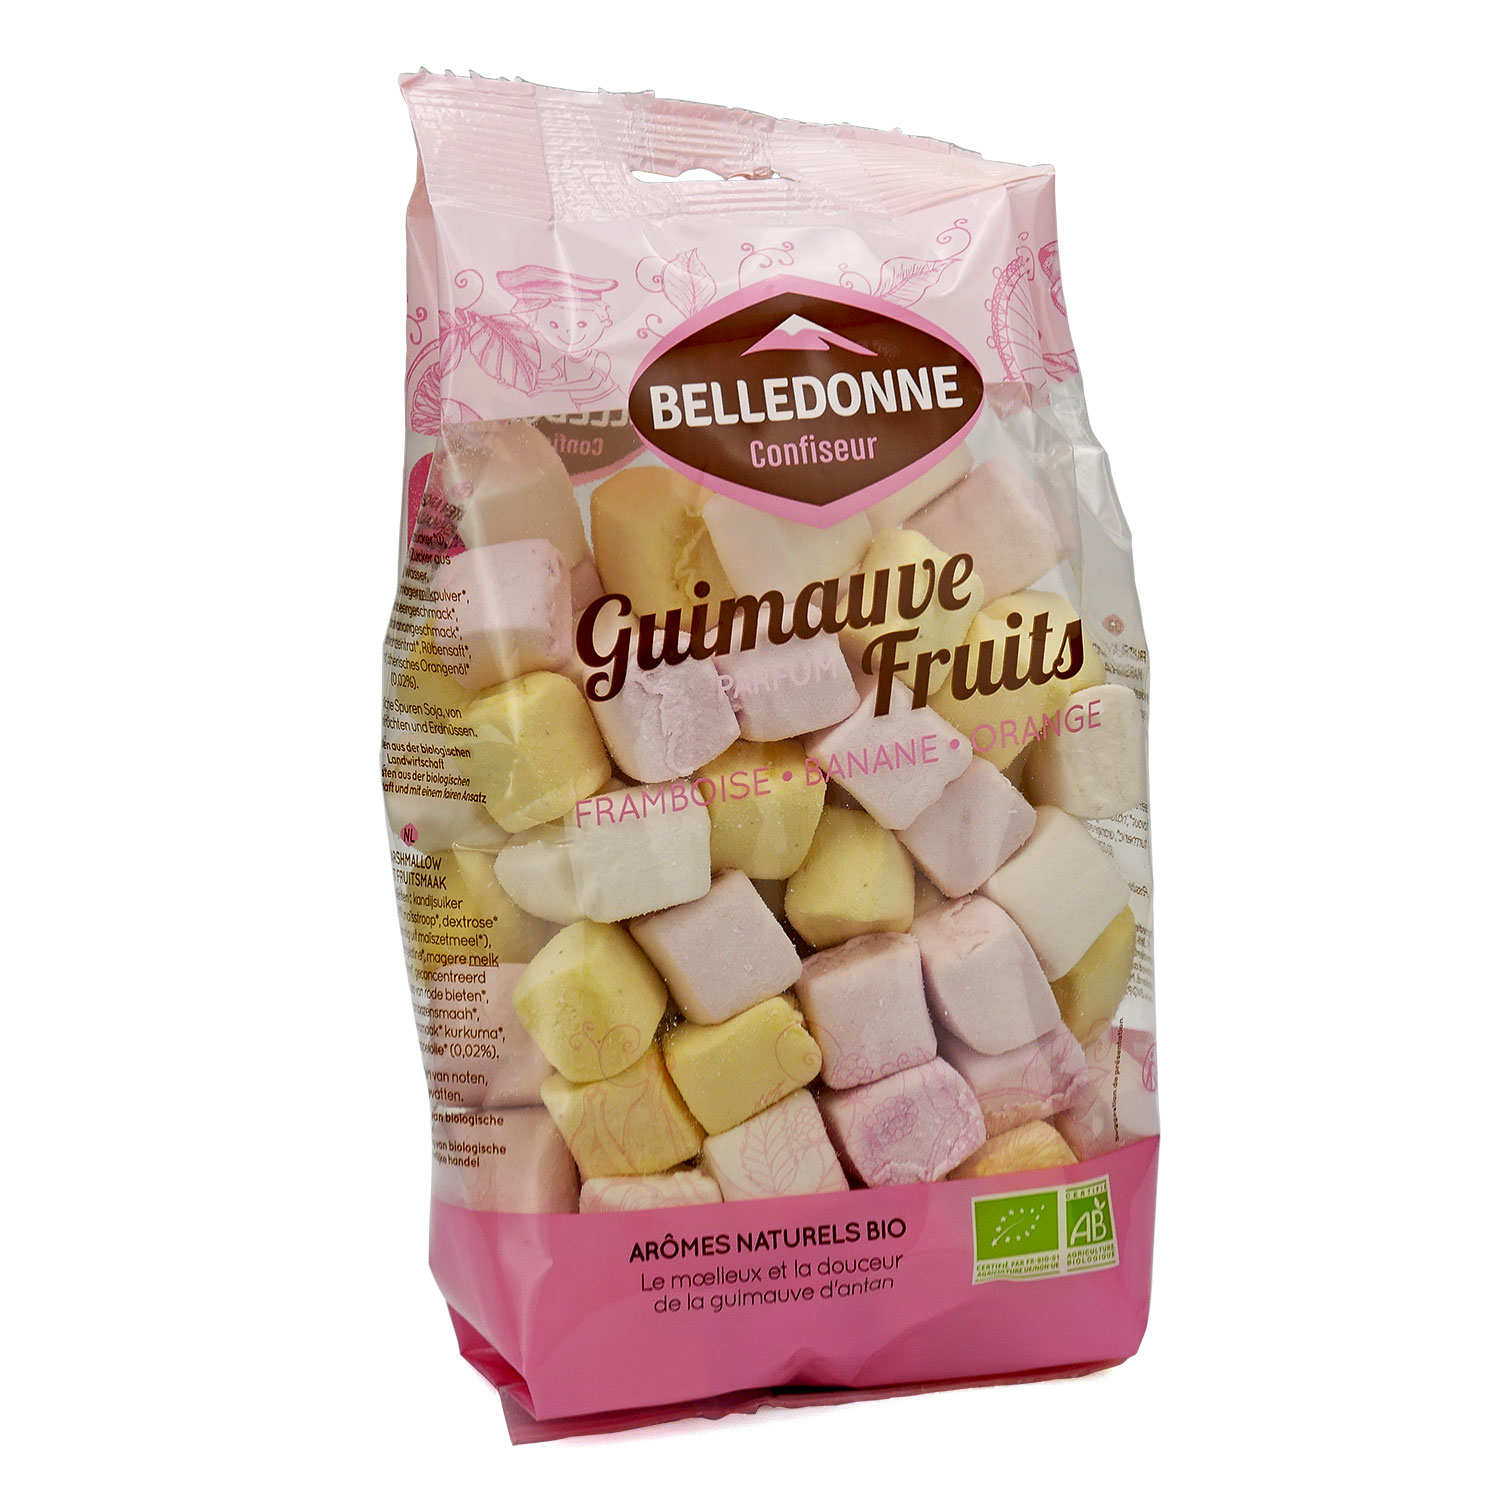 Organic Fruit Marshmallows in a Family Size